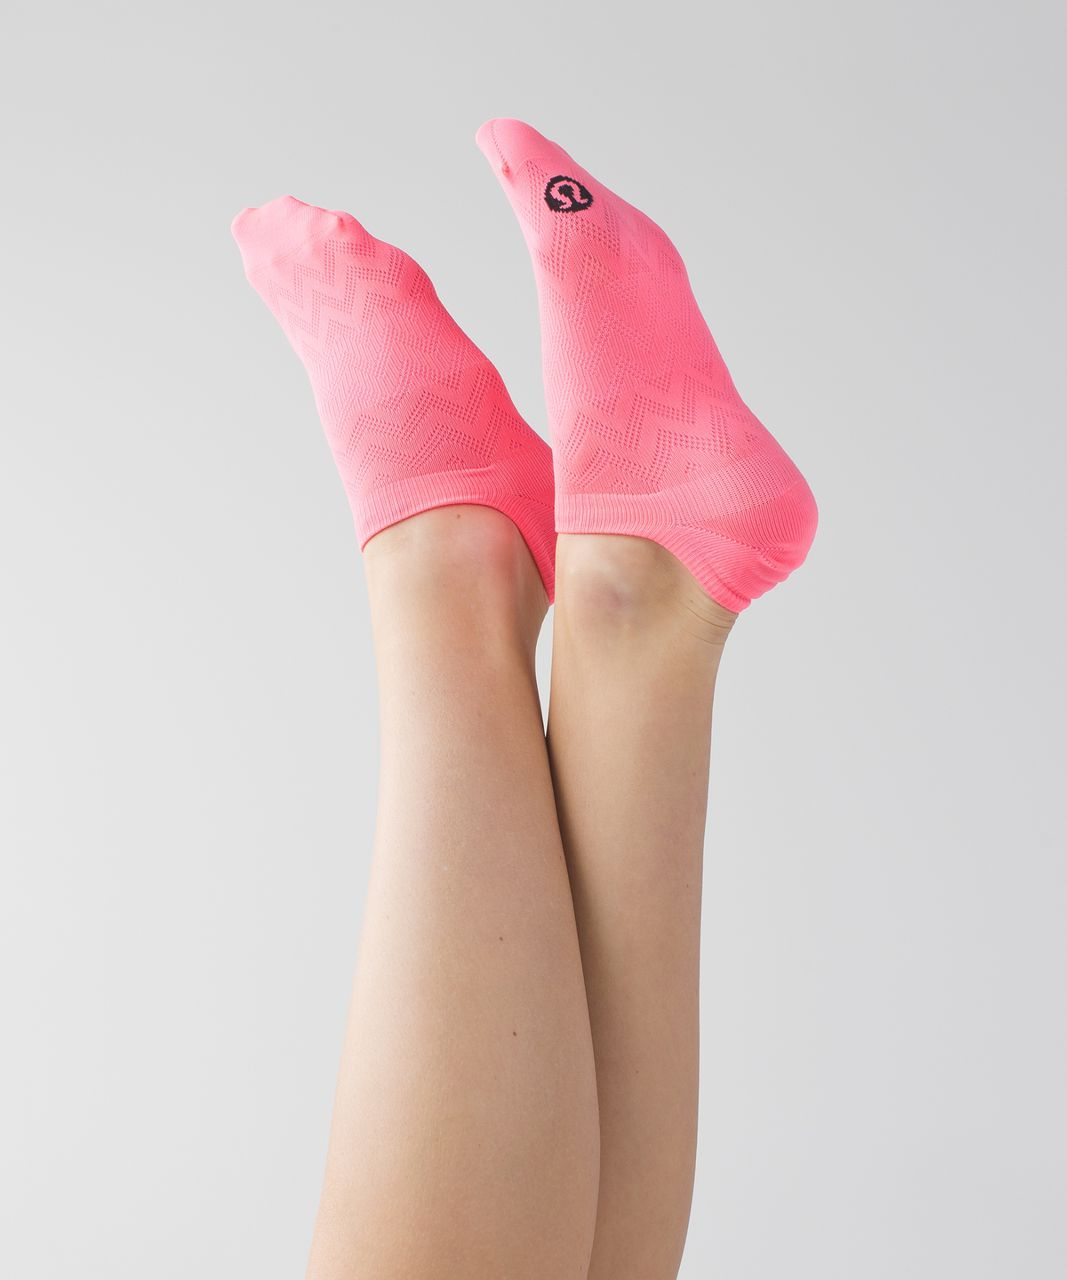 Lululemon Play All Day Sock - Flash Light